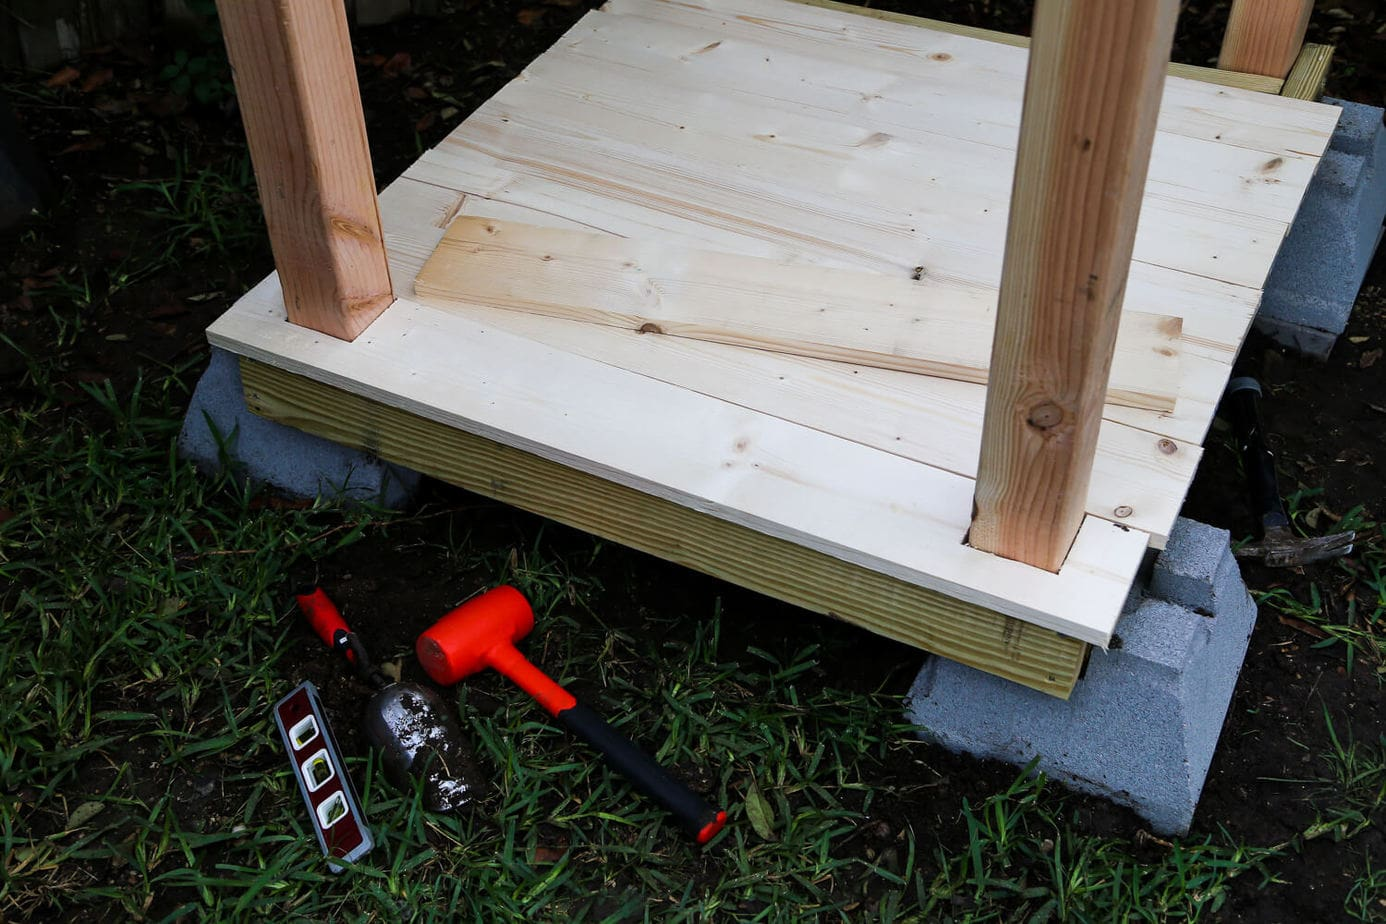 affordable easy step fixing - HD1386×924